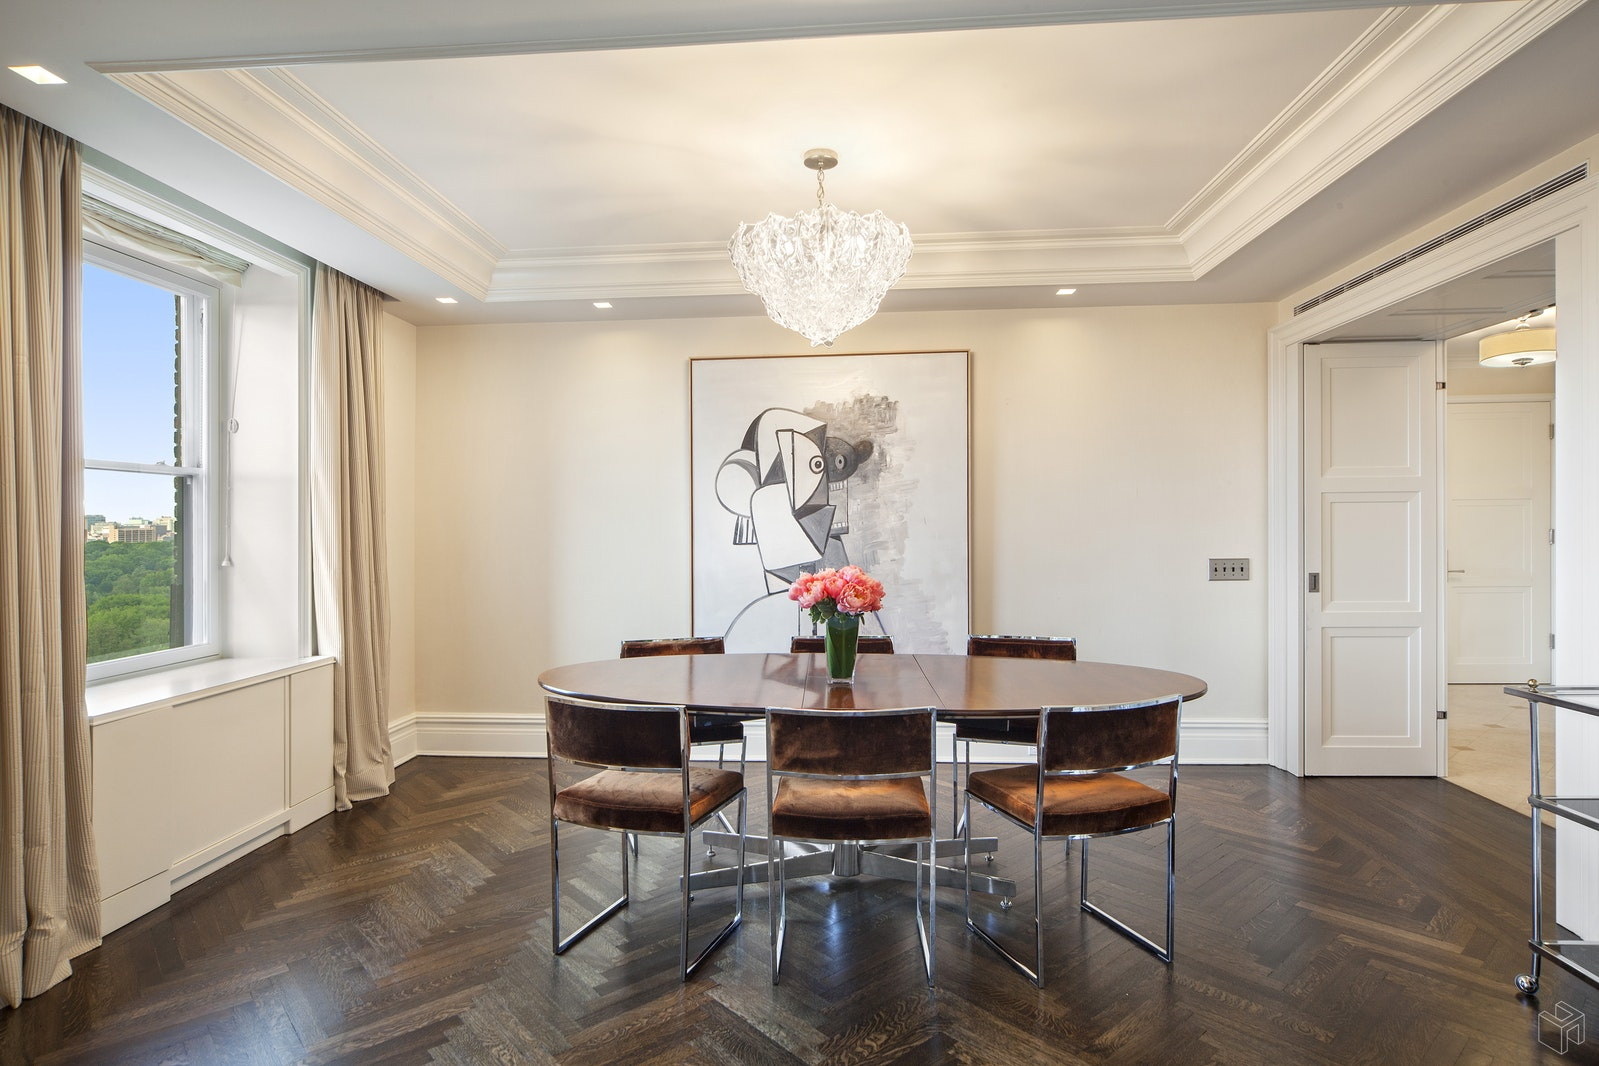 1165 Fifth Avenue 15pha, Upper East Side, NYC, 10029, $12,250,000, Property For Sale, Halstead Real Estate, Photo 6